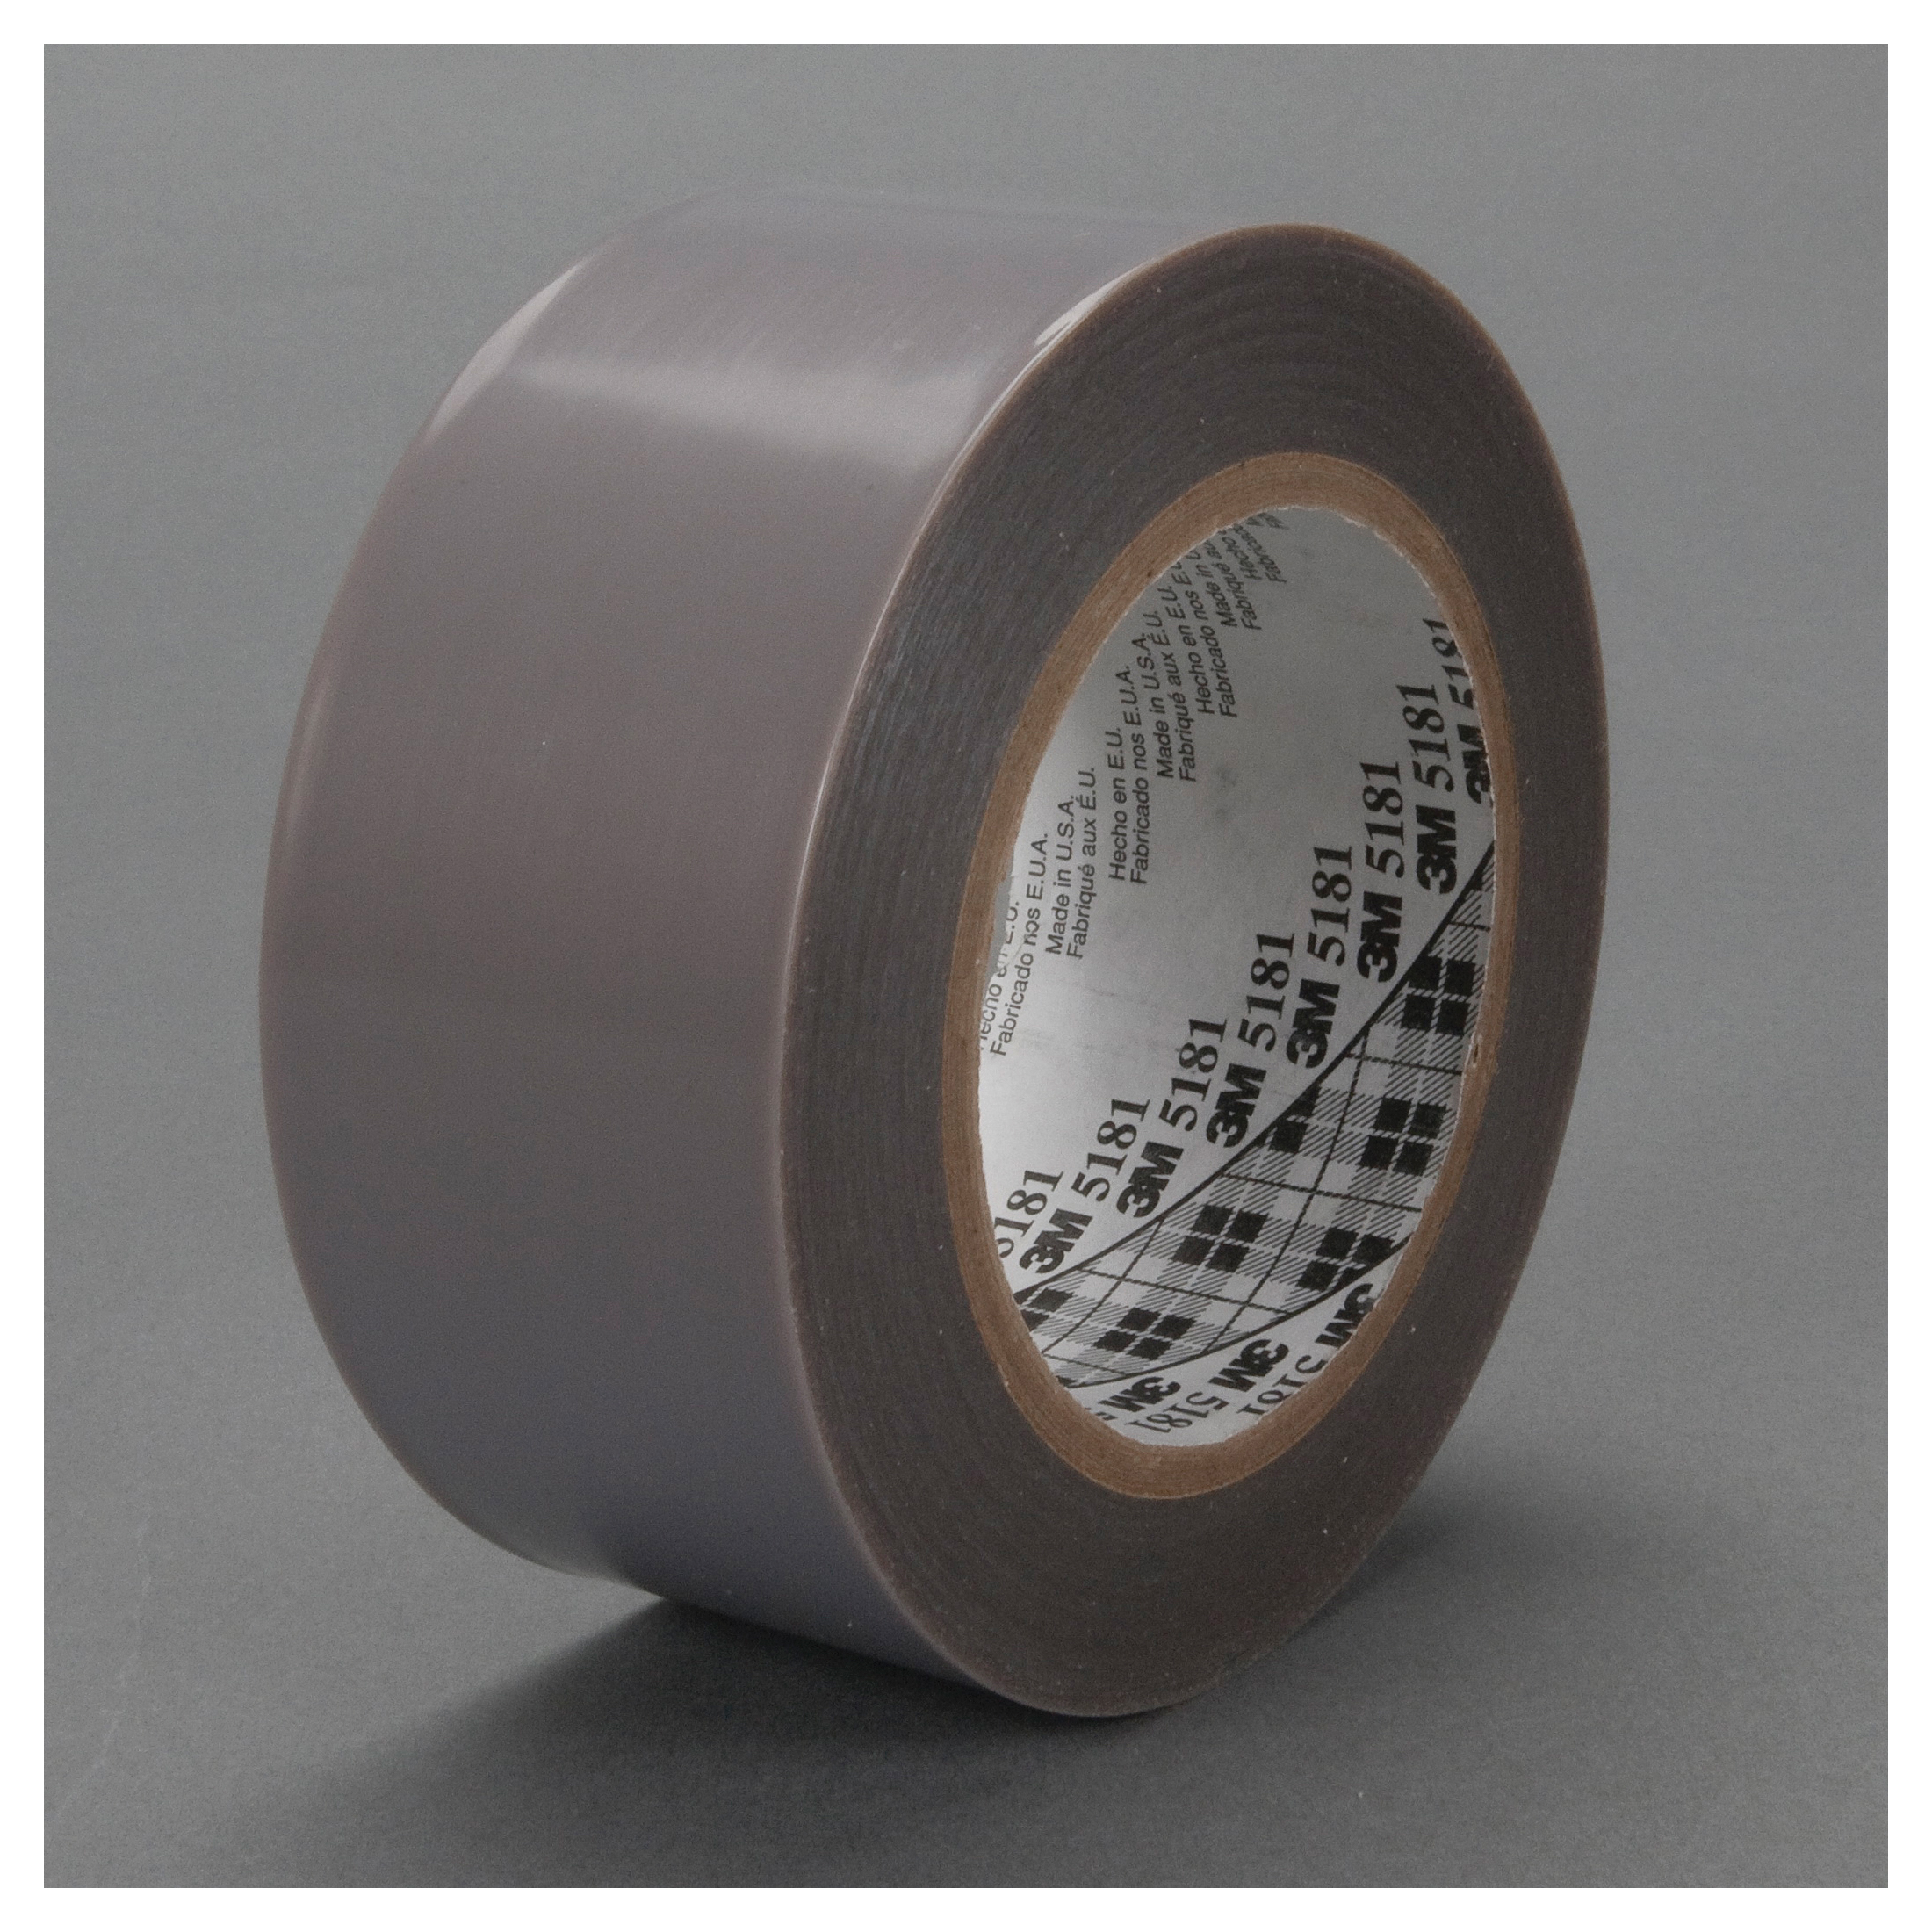 3M™ 021200-48113 General Purpose Film Tape, 36 yd L x 3 in W, 6.5 mil THK, Silicon Adhesive, Skived PTFE Backing, Gray